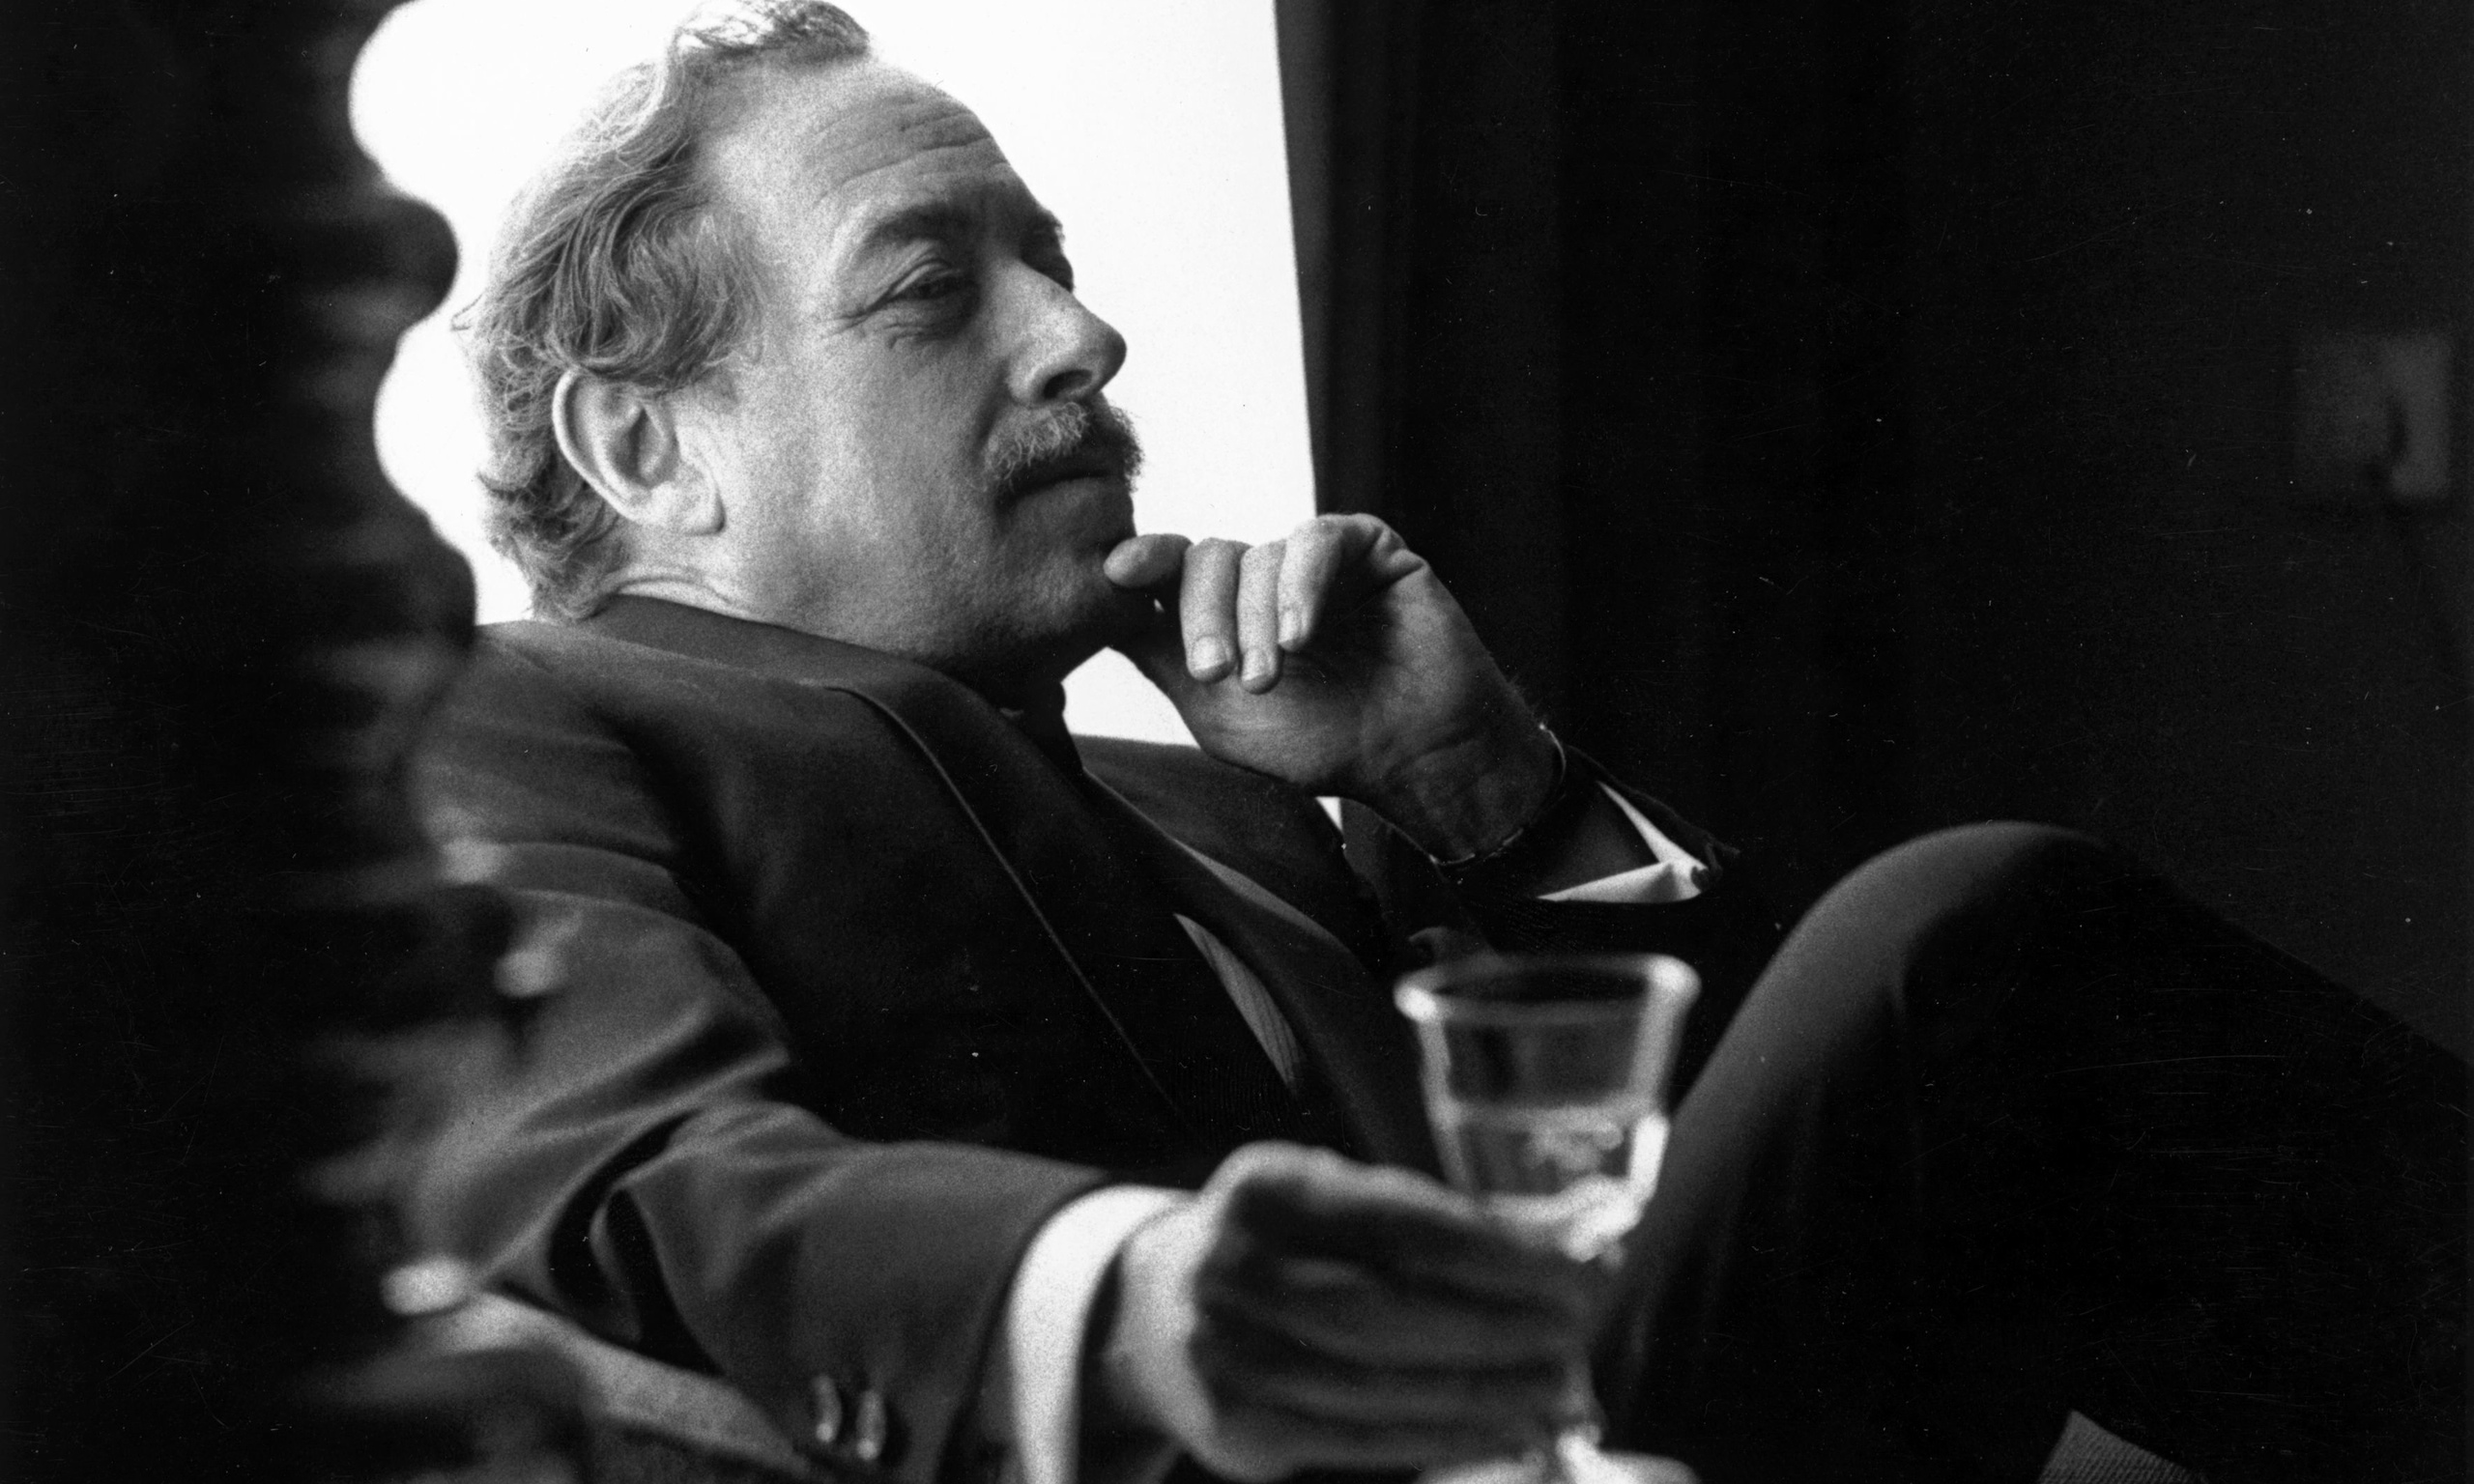 tennessee williams Playwright, author best know for the plays cat on a hot tin roof and the glass menagerie.